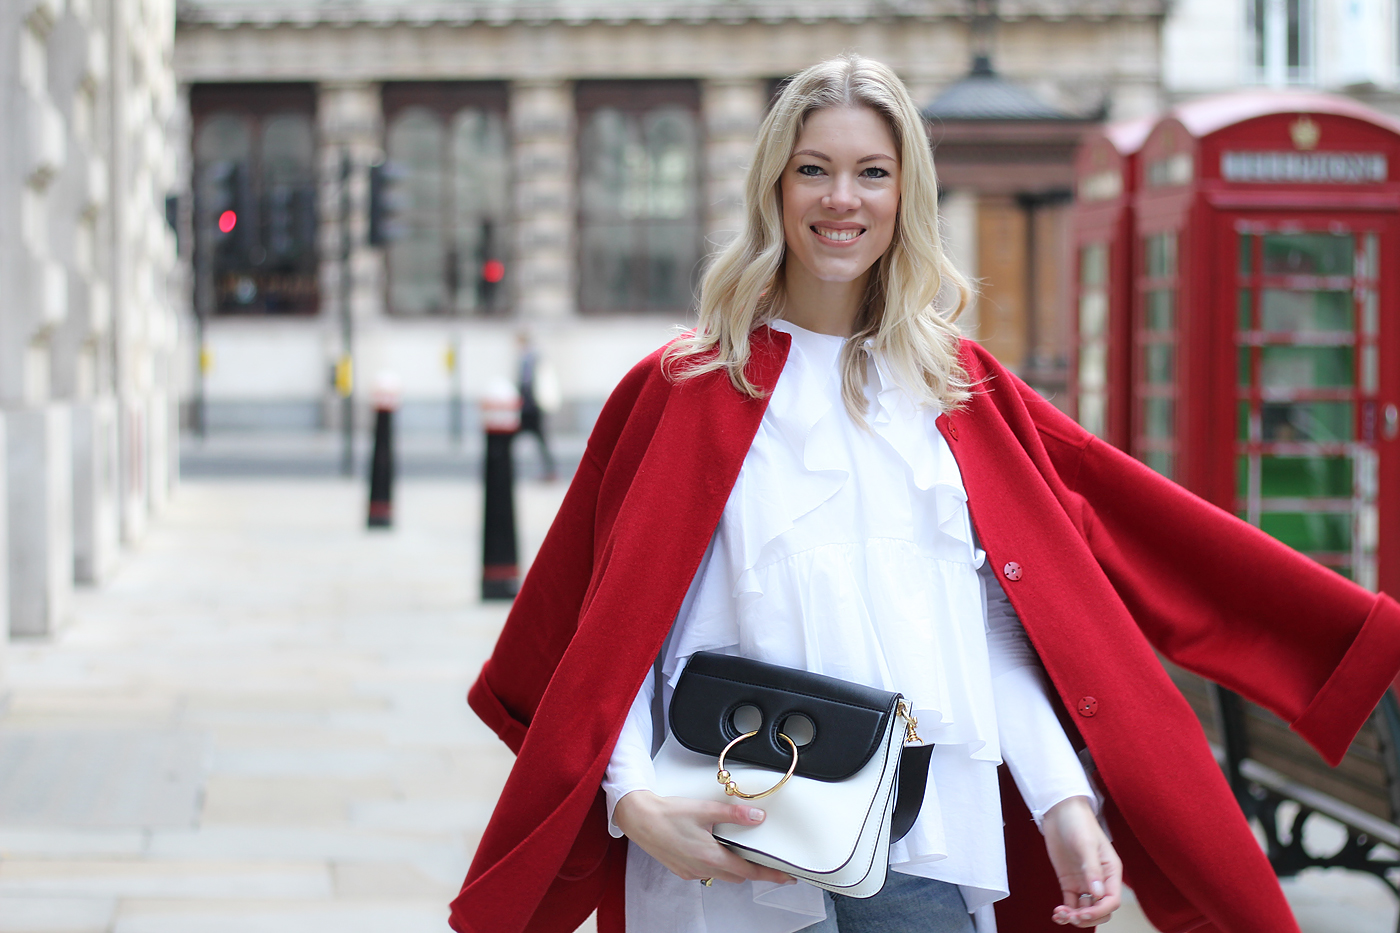 Red riding hood – #LFW Look 2, London